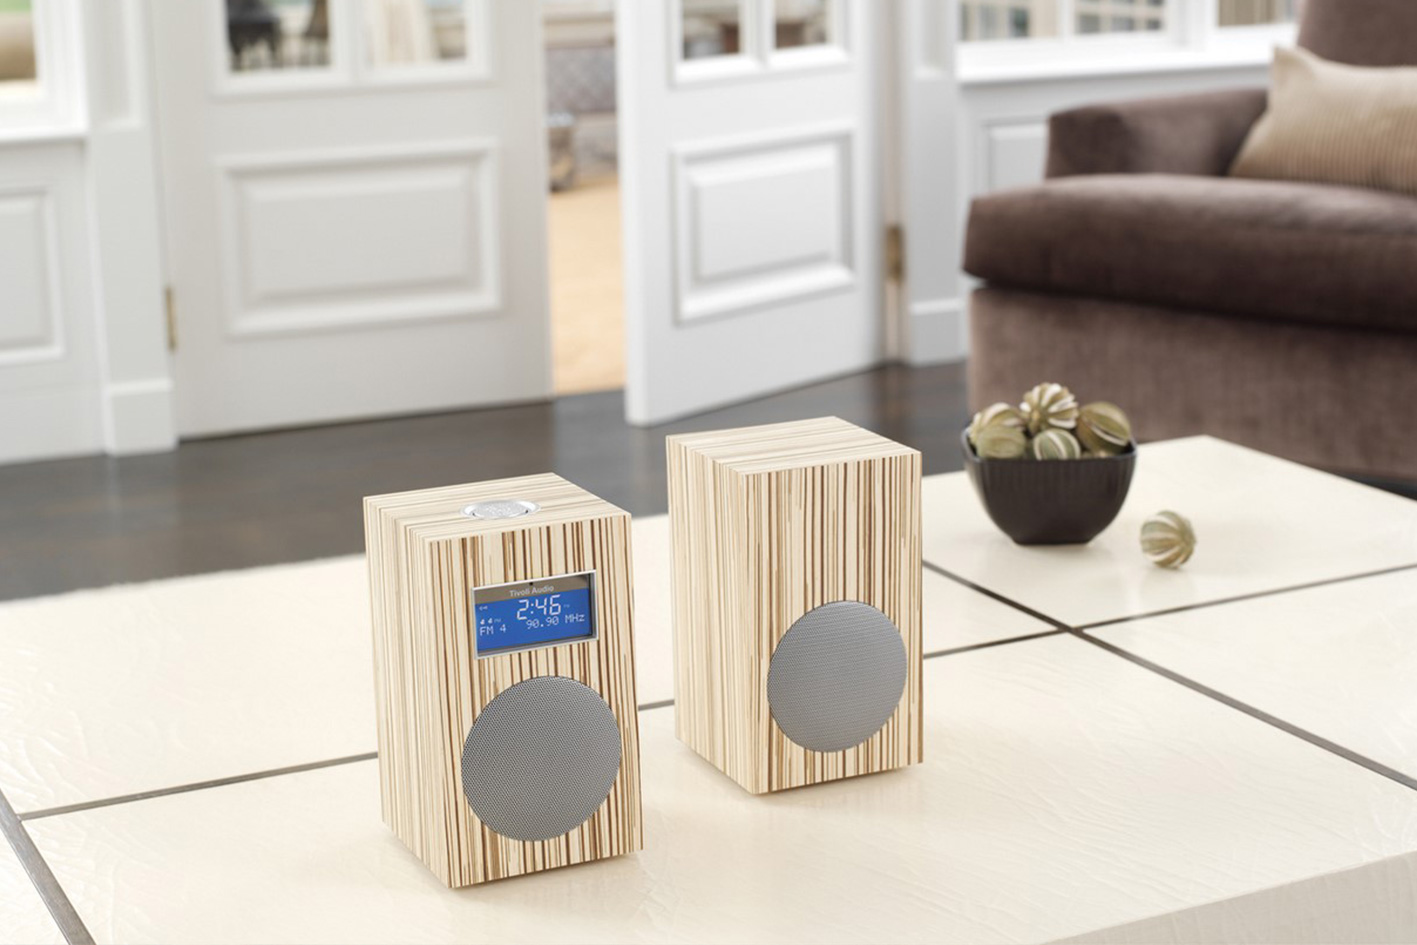 Tivoli AudioNetworks Stereo Radio-lifestyle